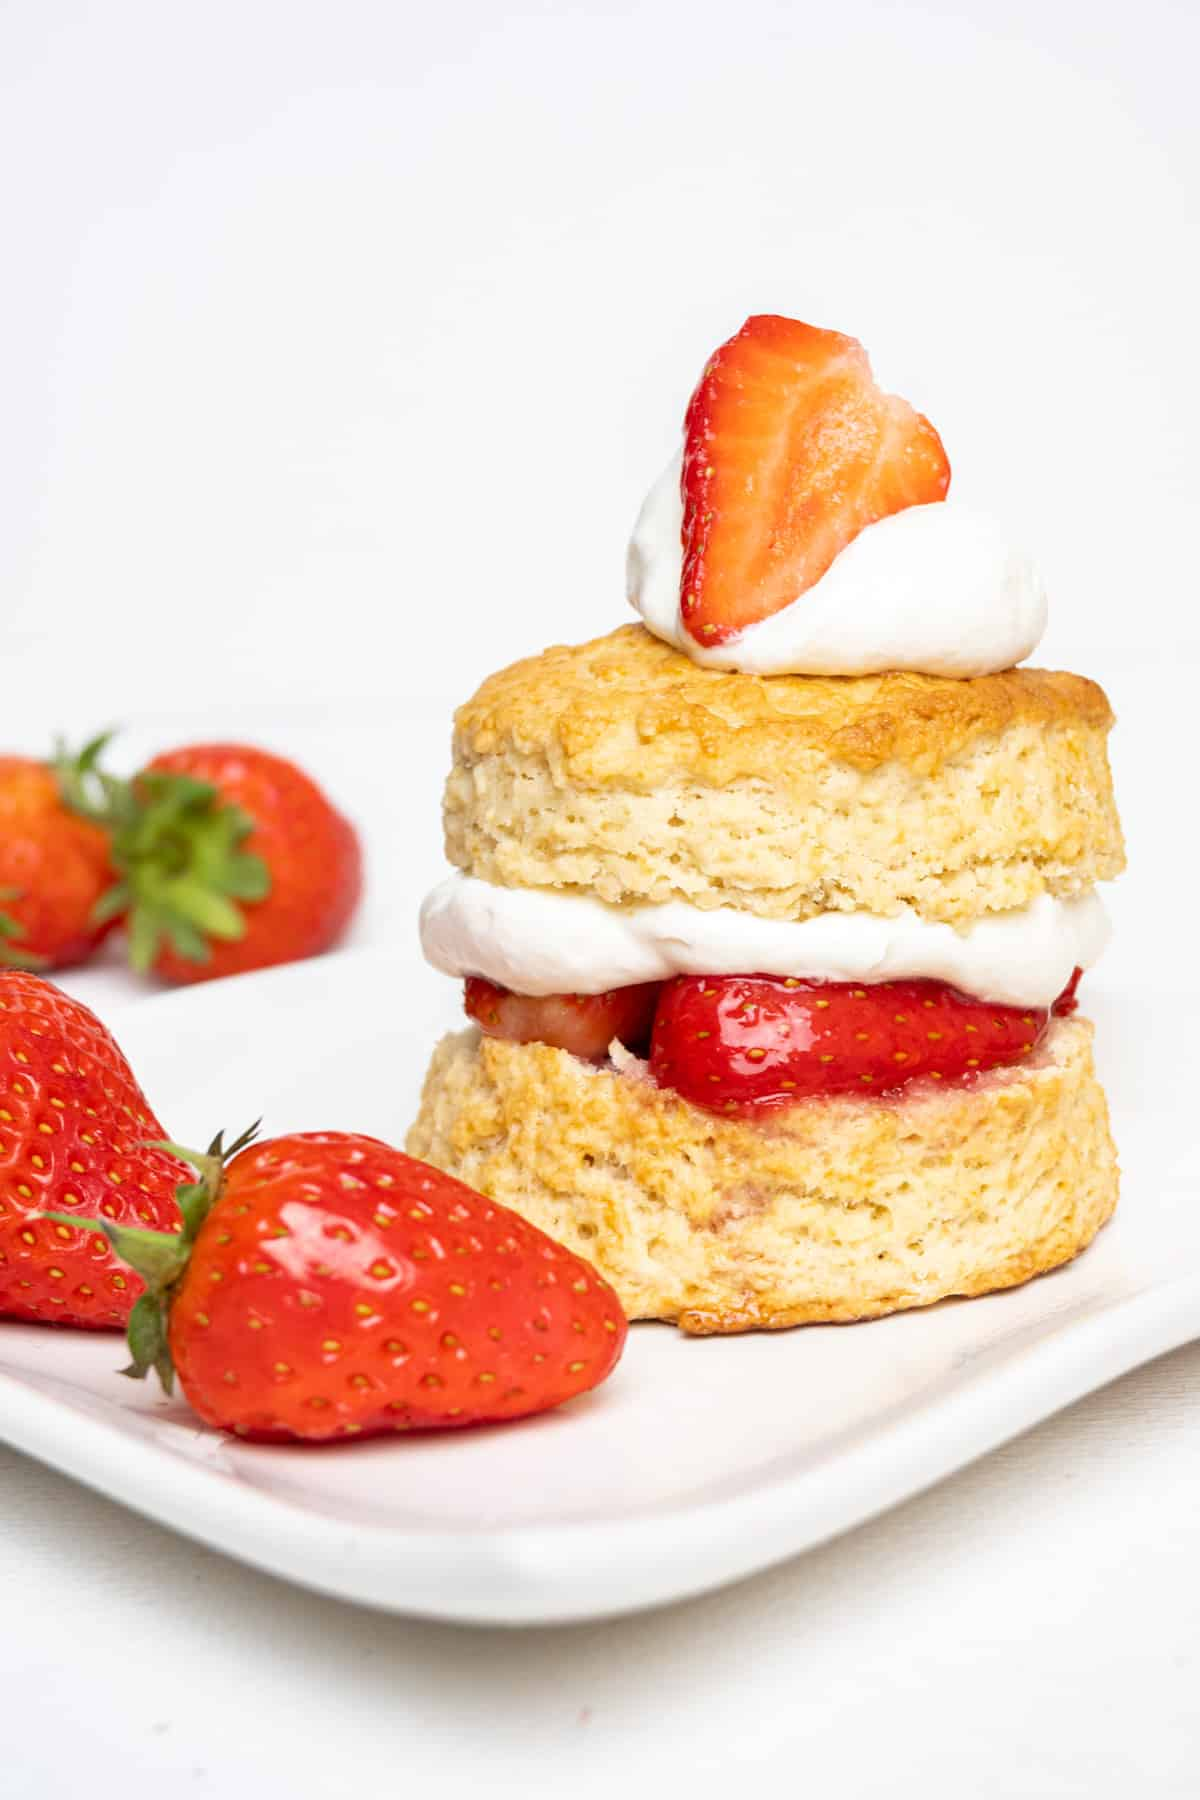 Two layers of golden baked biscuit are filled with juicy strawberries and whipped cream. The top biscuit is topped with more cream and a fresh strawberry.